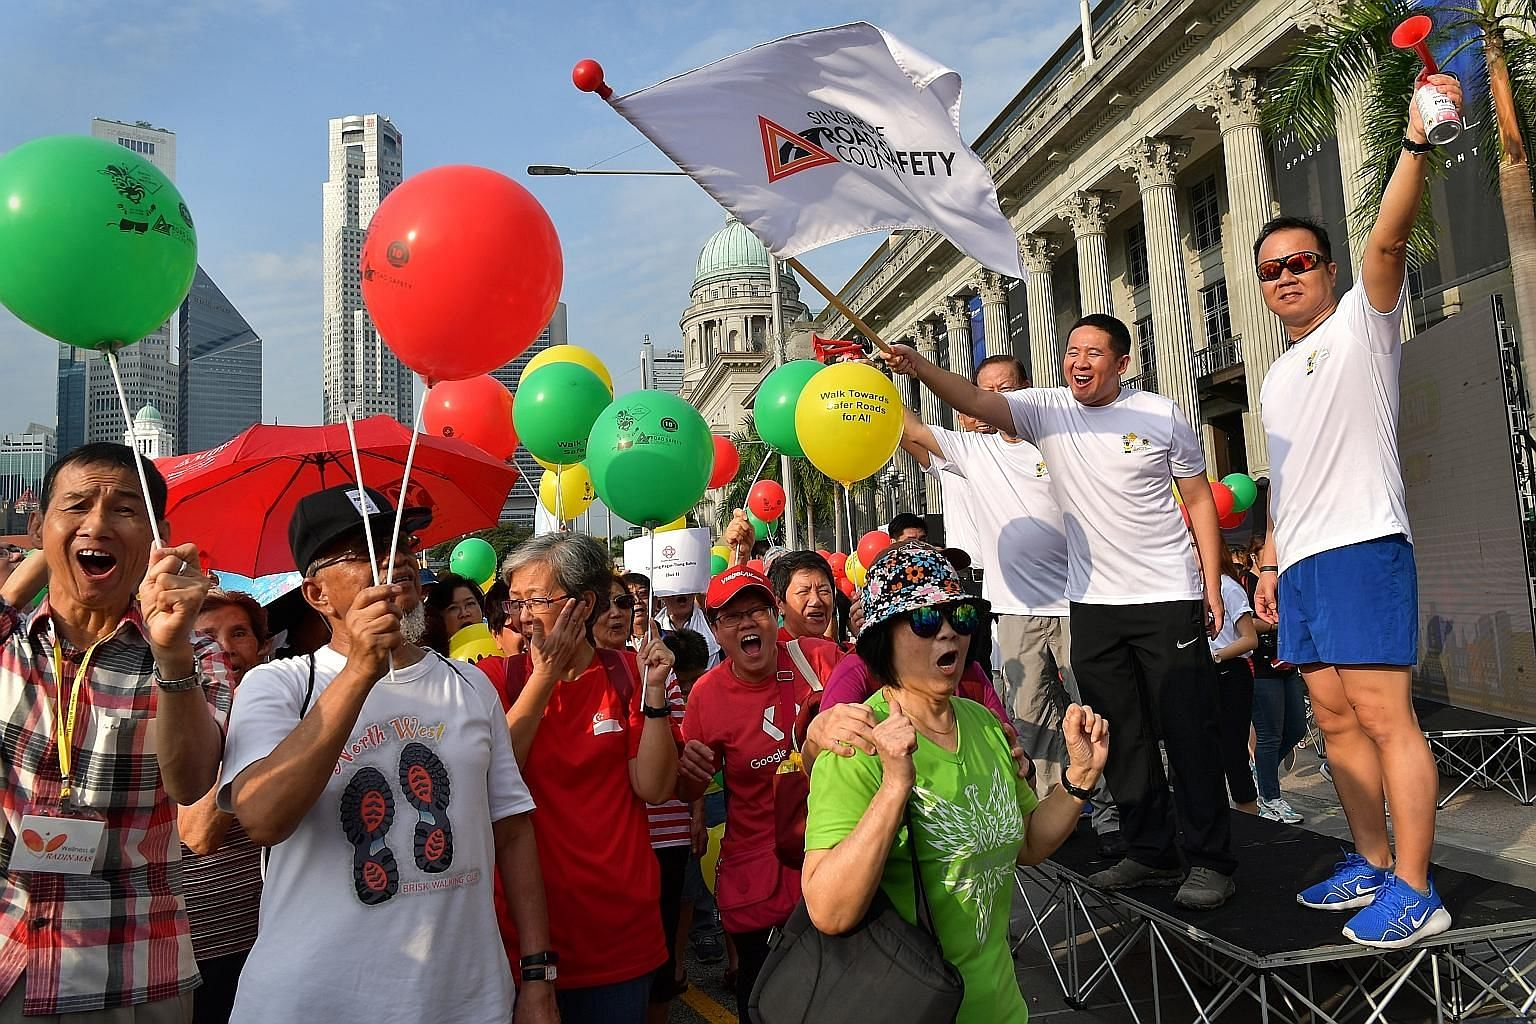 Senior Parliamentary Secretary for Home Affairs and for Health Amrin Amin (second from right) and Singapore Road Safety Council chairman Bernard Tay (on Mr Amrin's right) flagging off the 1.5km walkathon outside the National Gallery Singapore yesterd